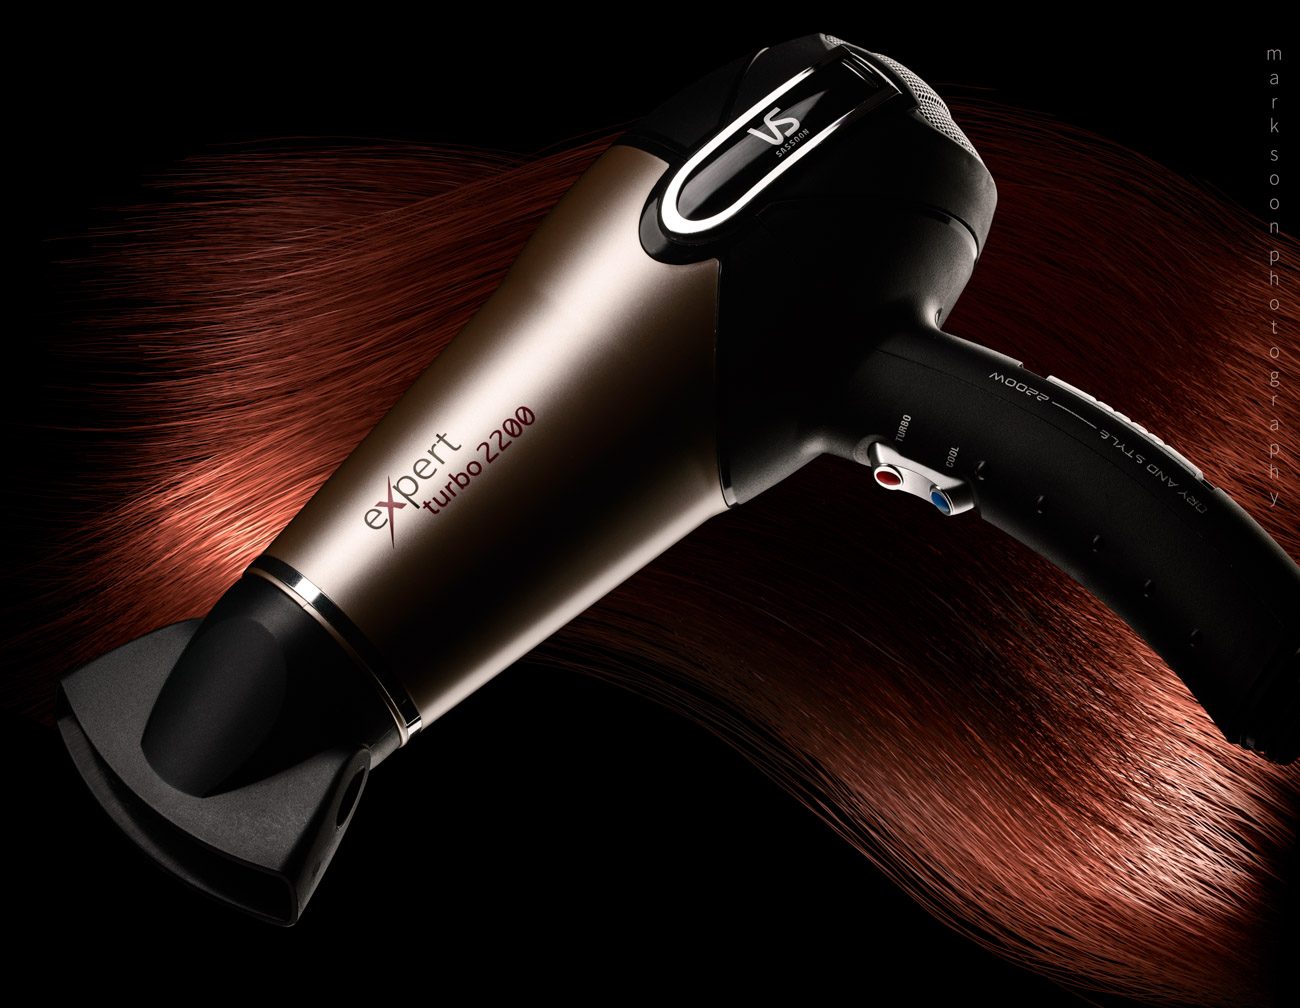 Hair dryer product photo